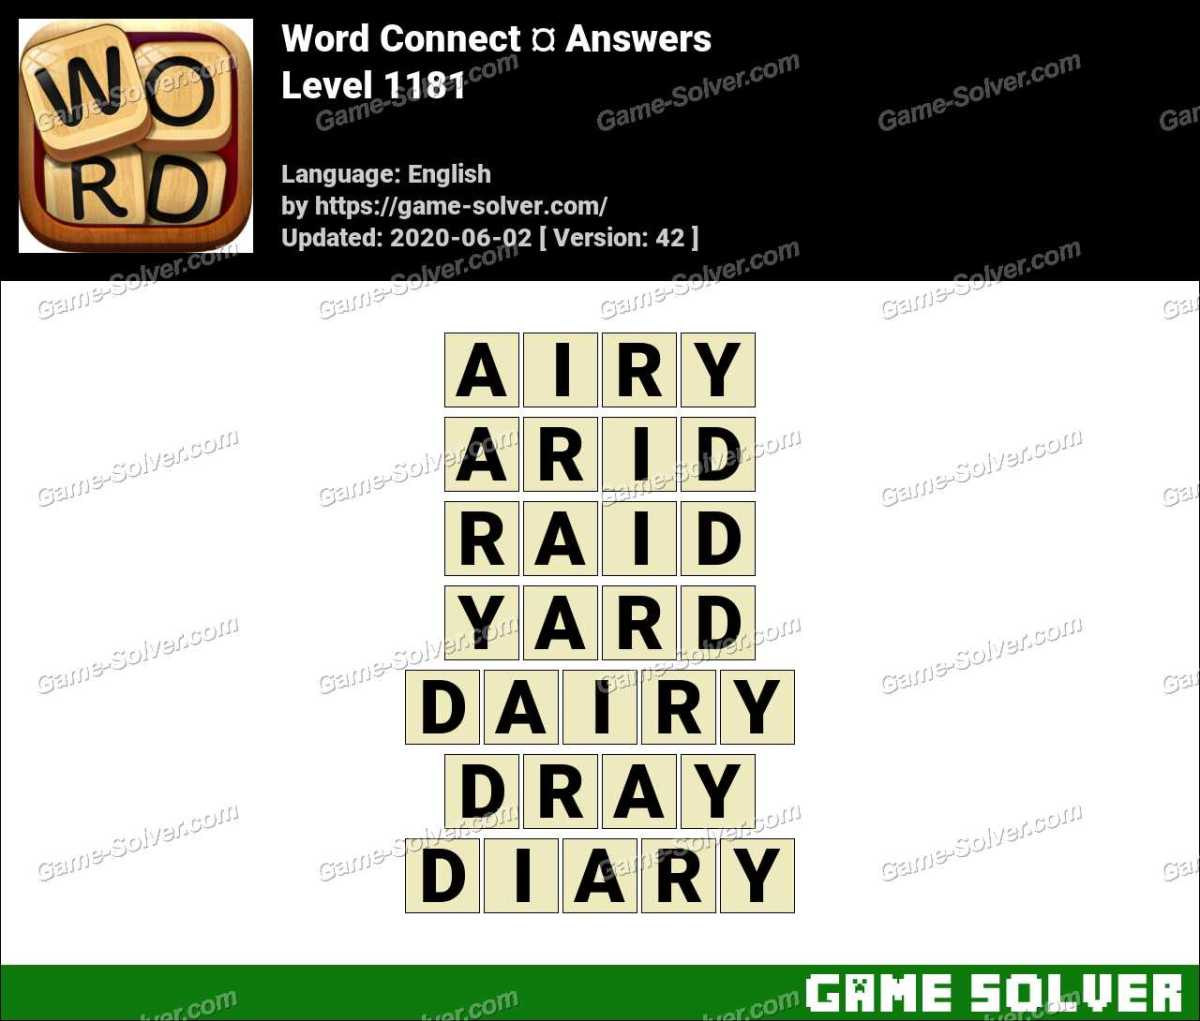 Word Connect Level 1181 Answers